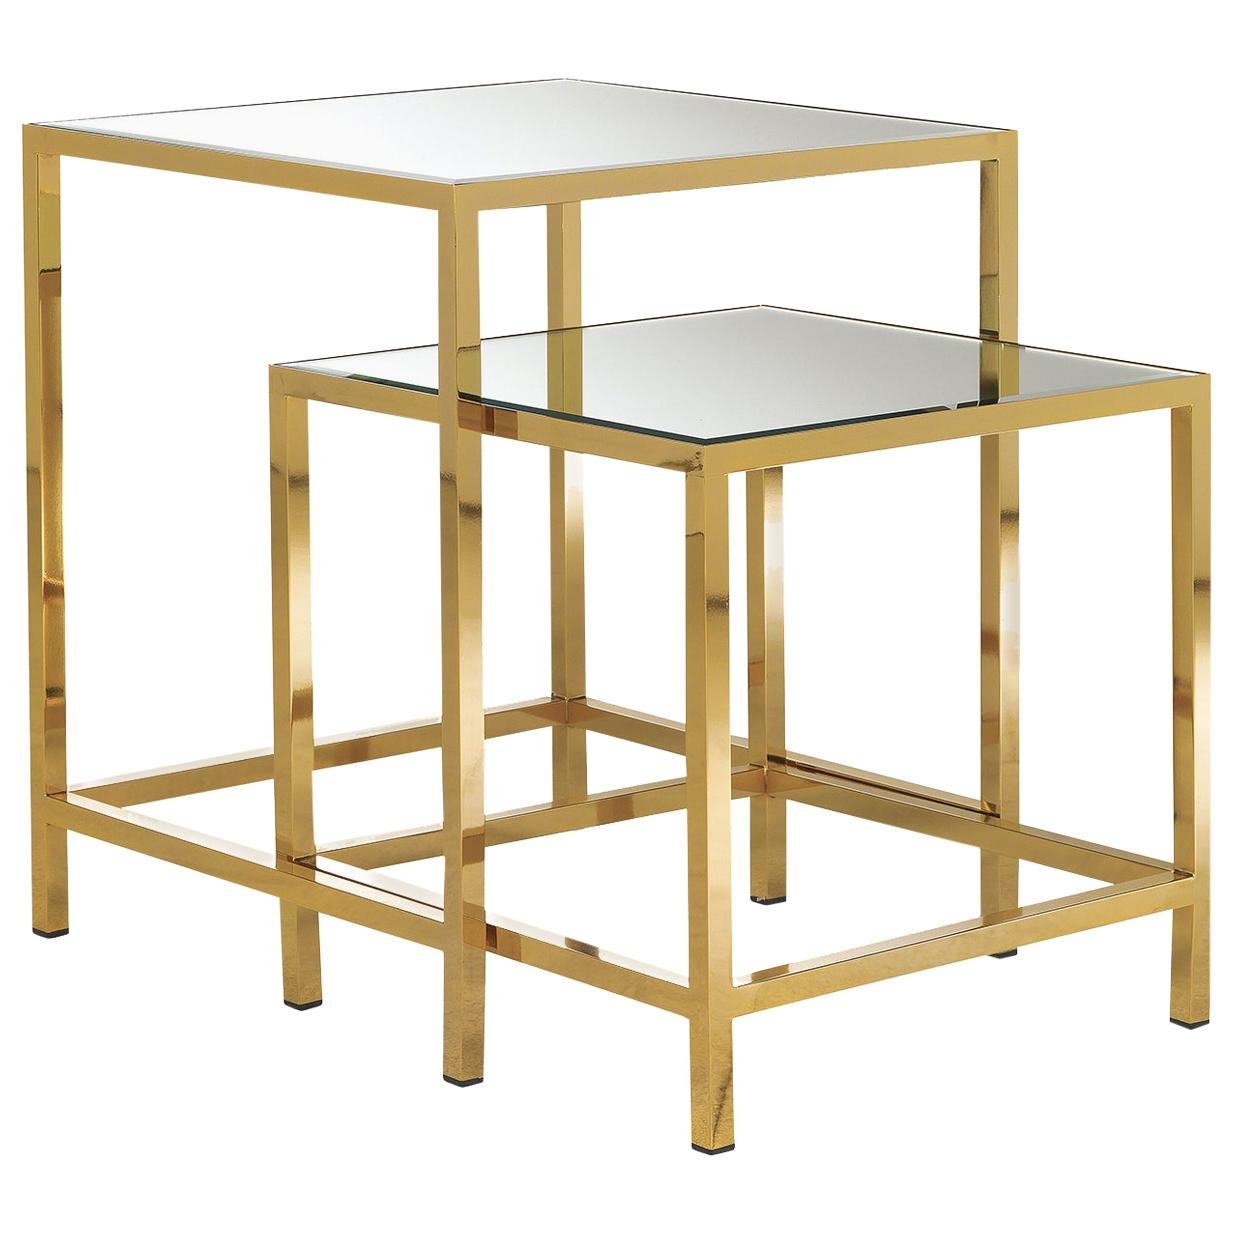 Set of 2 Nesting Tables with Mirror